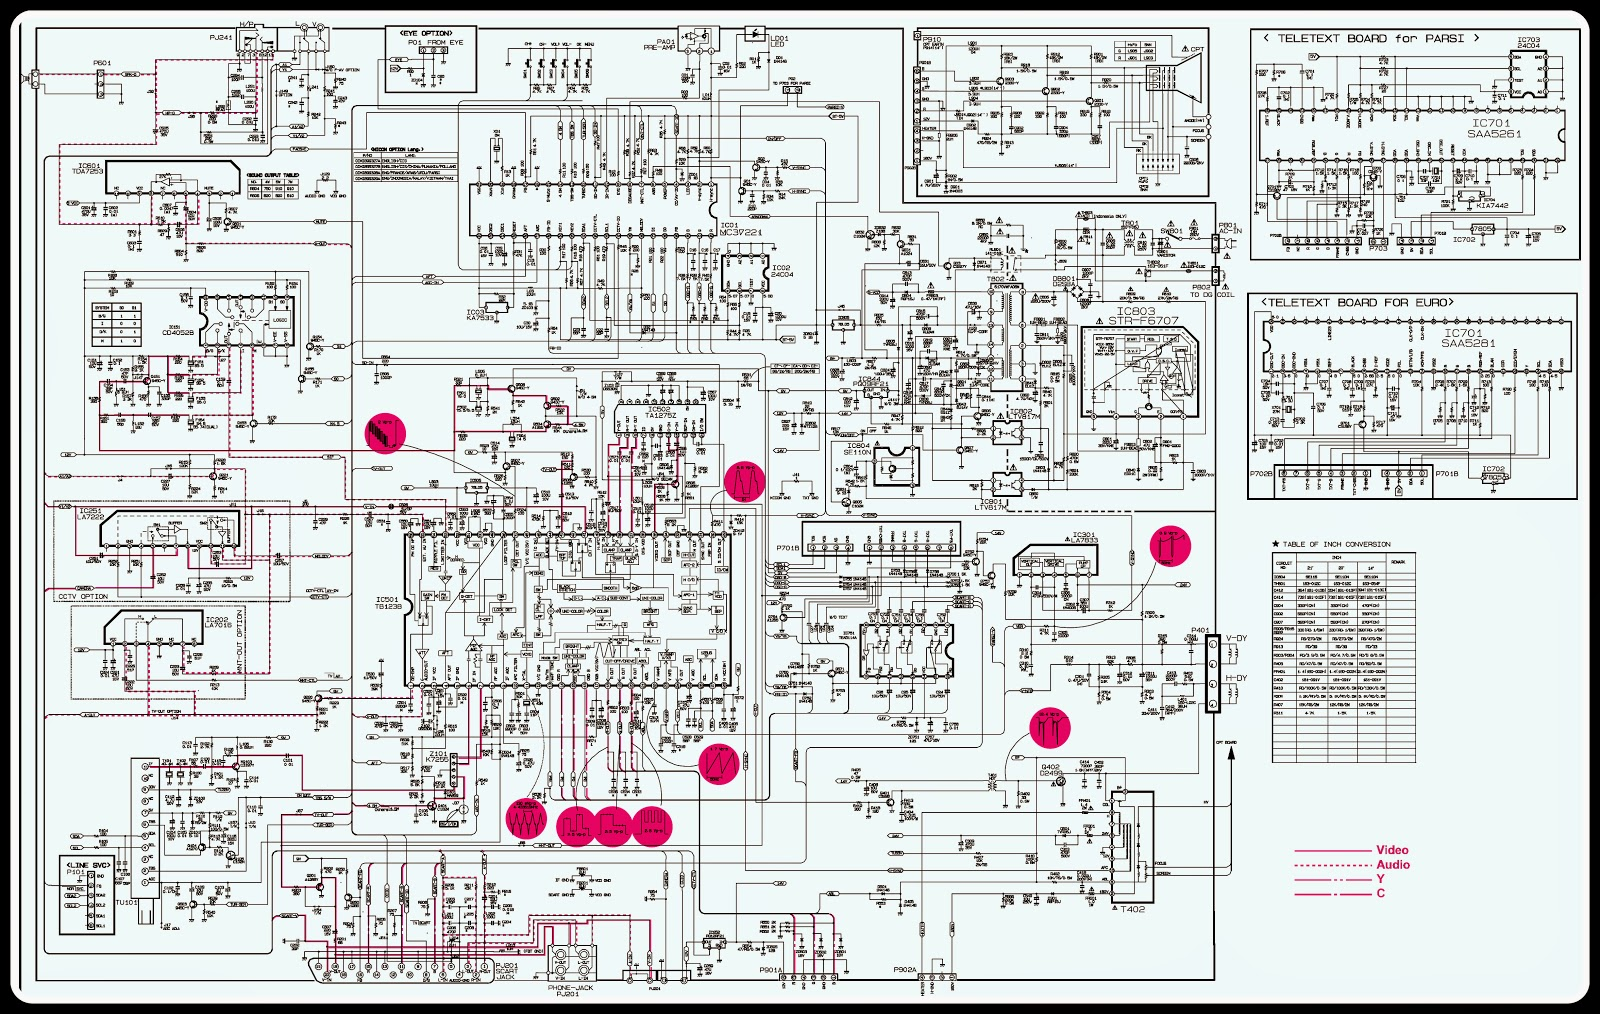 tv circuit diagram wiring diagrams img electronic circuit diagrams tv schematic diagrams [ 1600 x 1014 Pixel ]